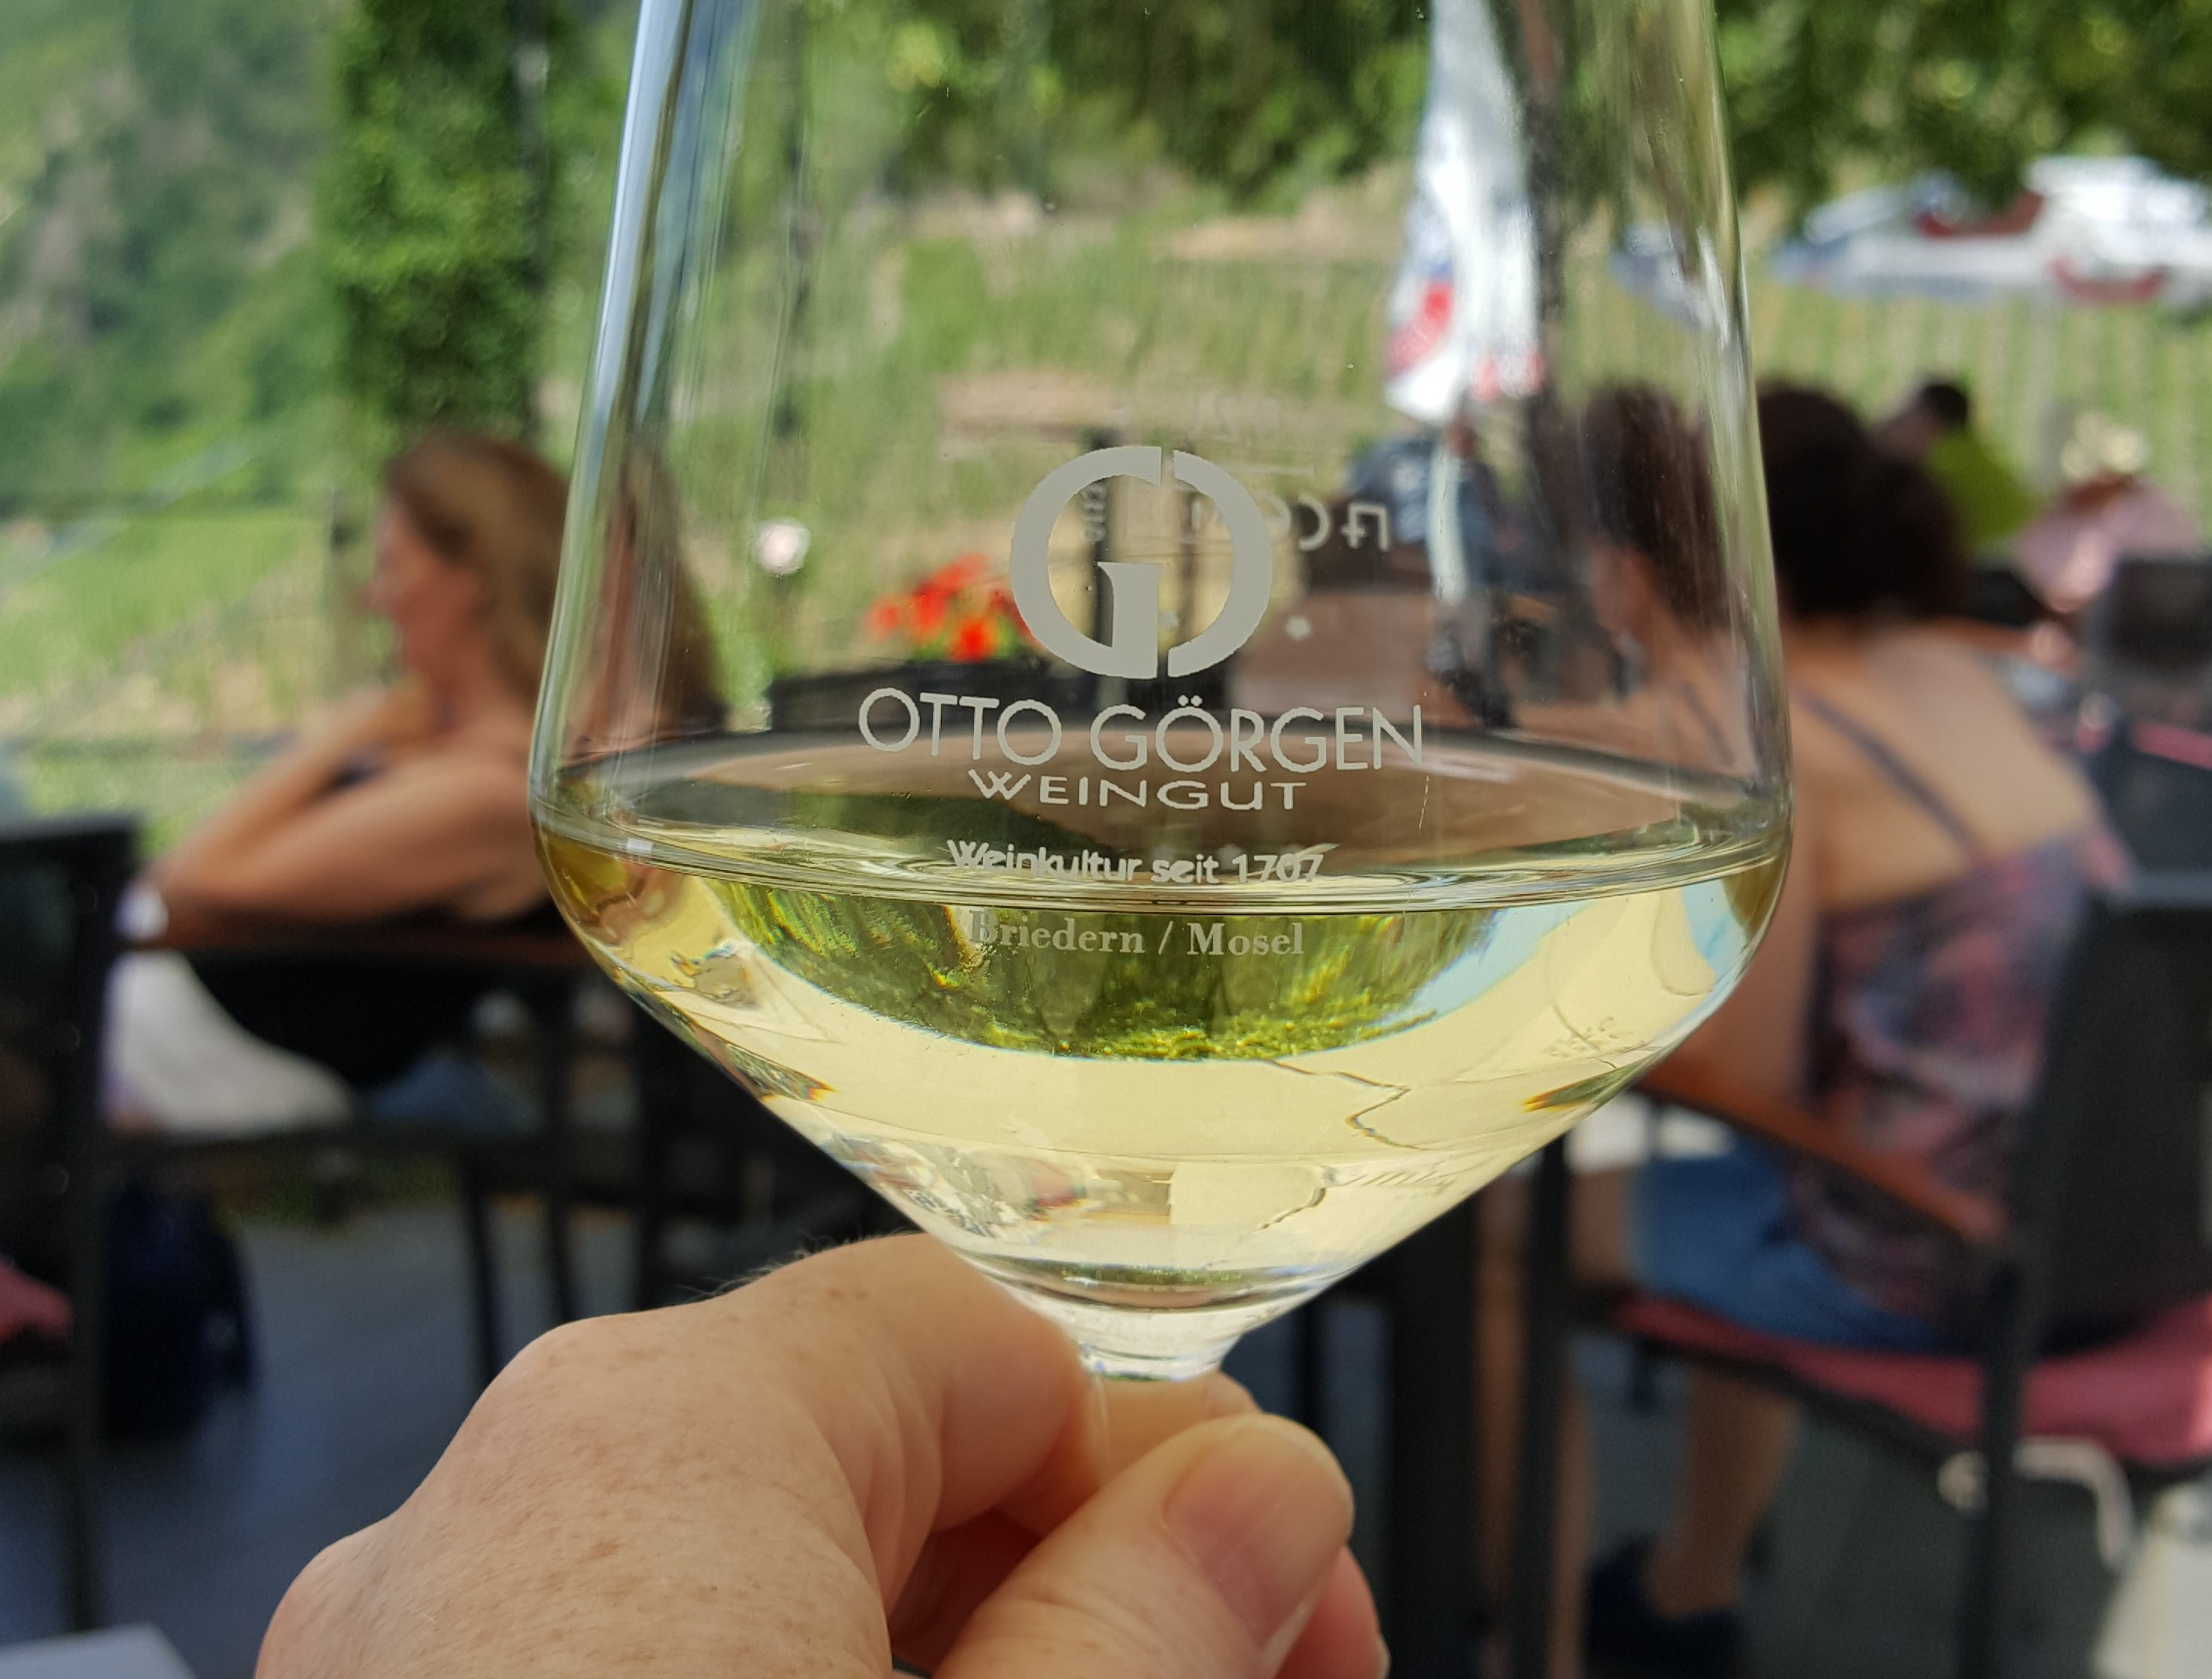 It doesn't get more local that looking at the vineyard through the wine glass. Lunch in front of St. Joseph's Church in Beilstein on the Moselle River. Photo by Dragonfly Leathrum